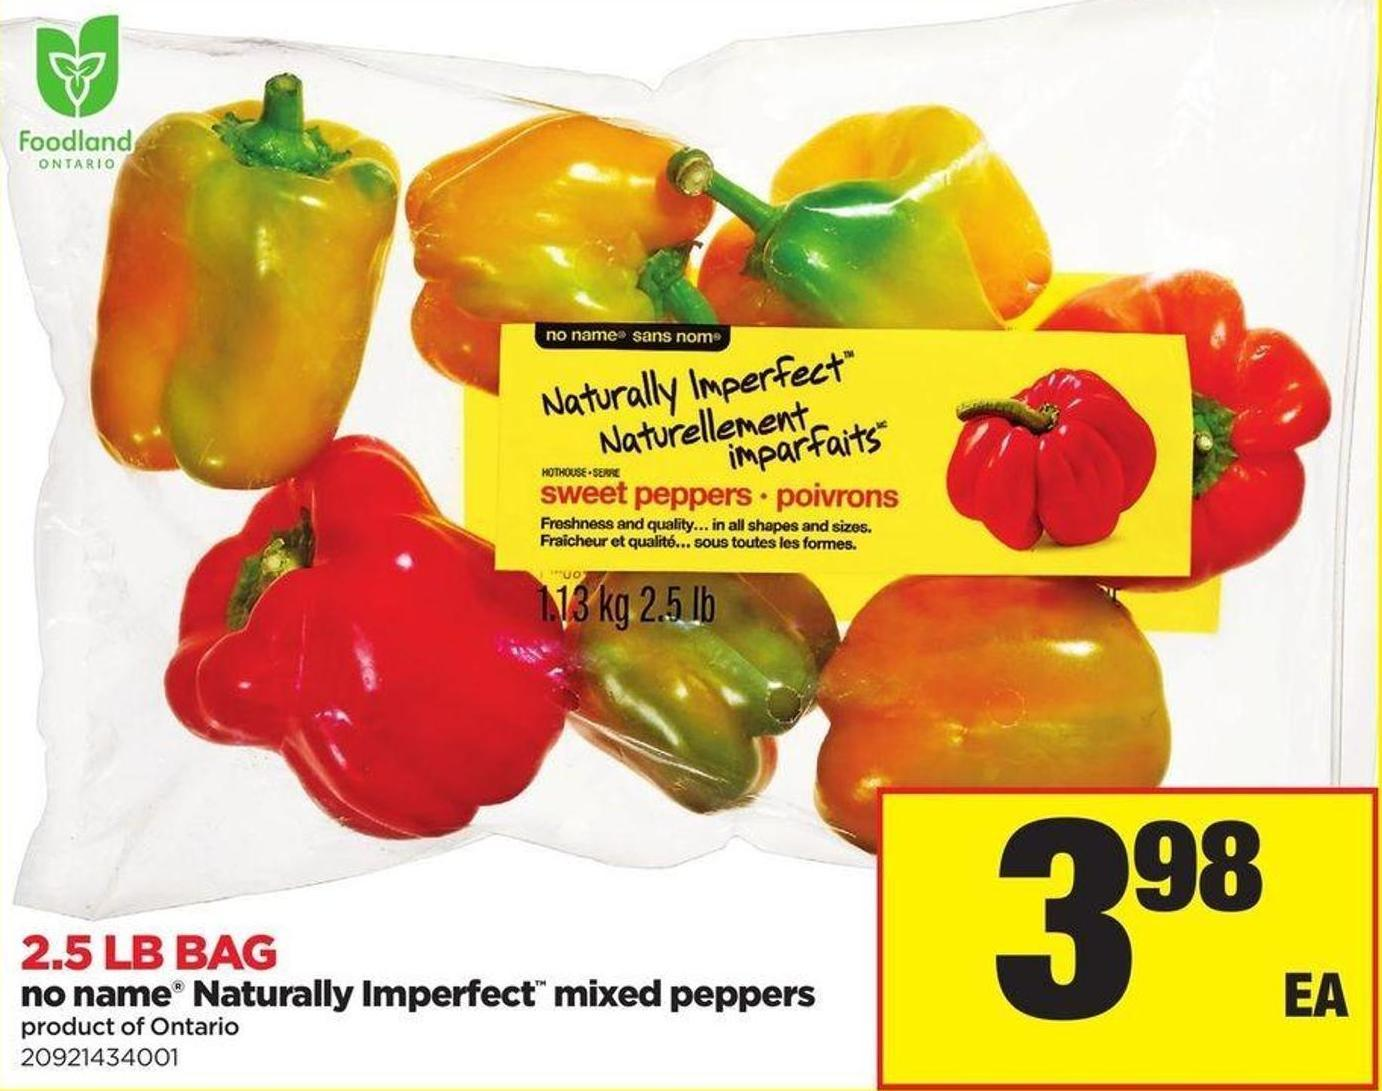 No Name Naturally Imperfect Mixed Peppers - 2.5 Lb. Bag